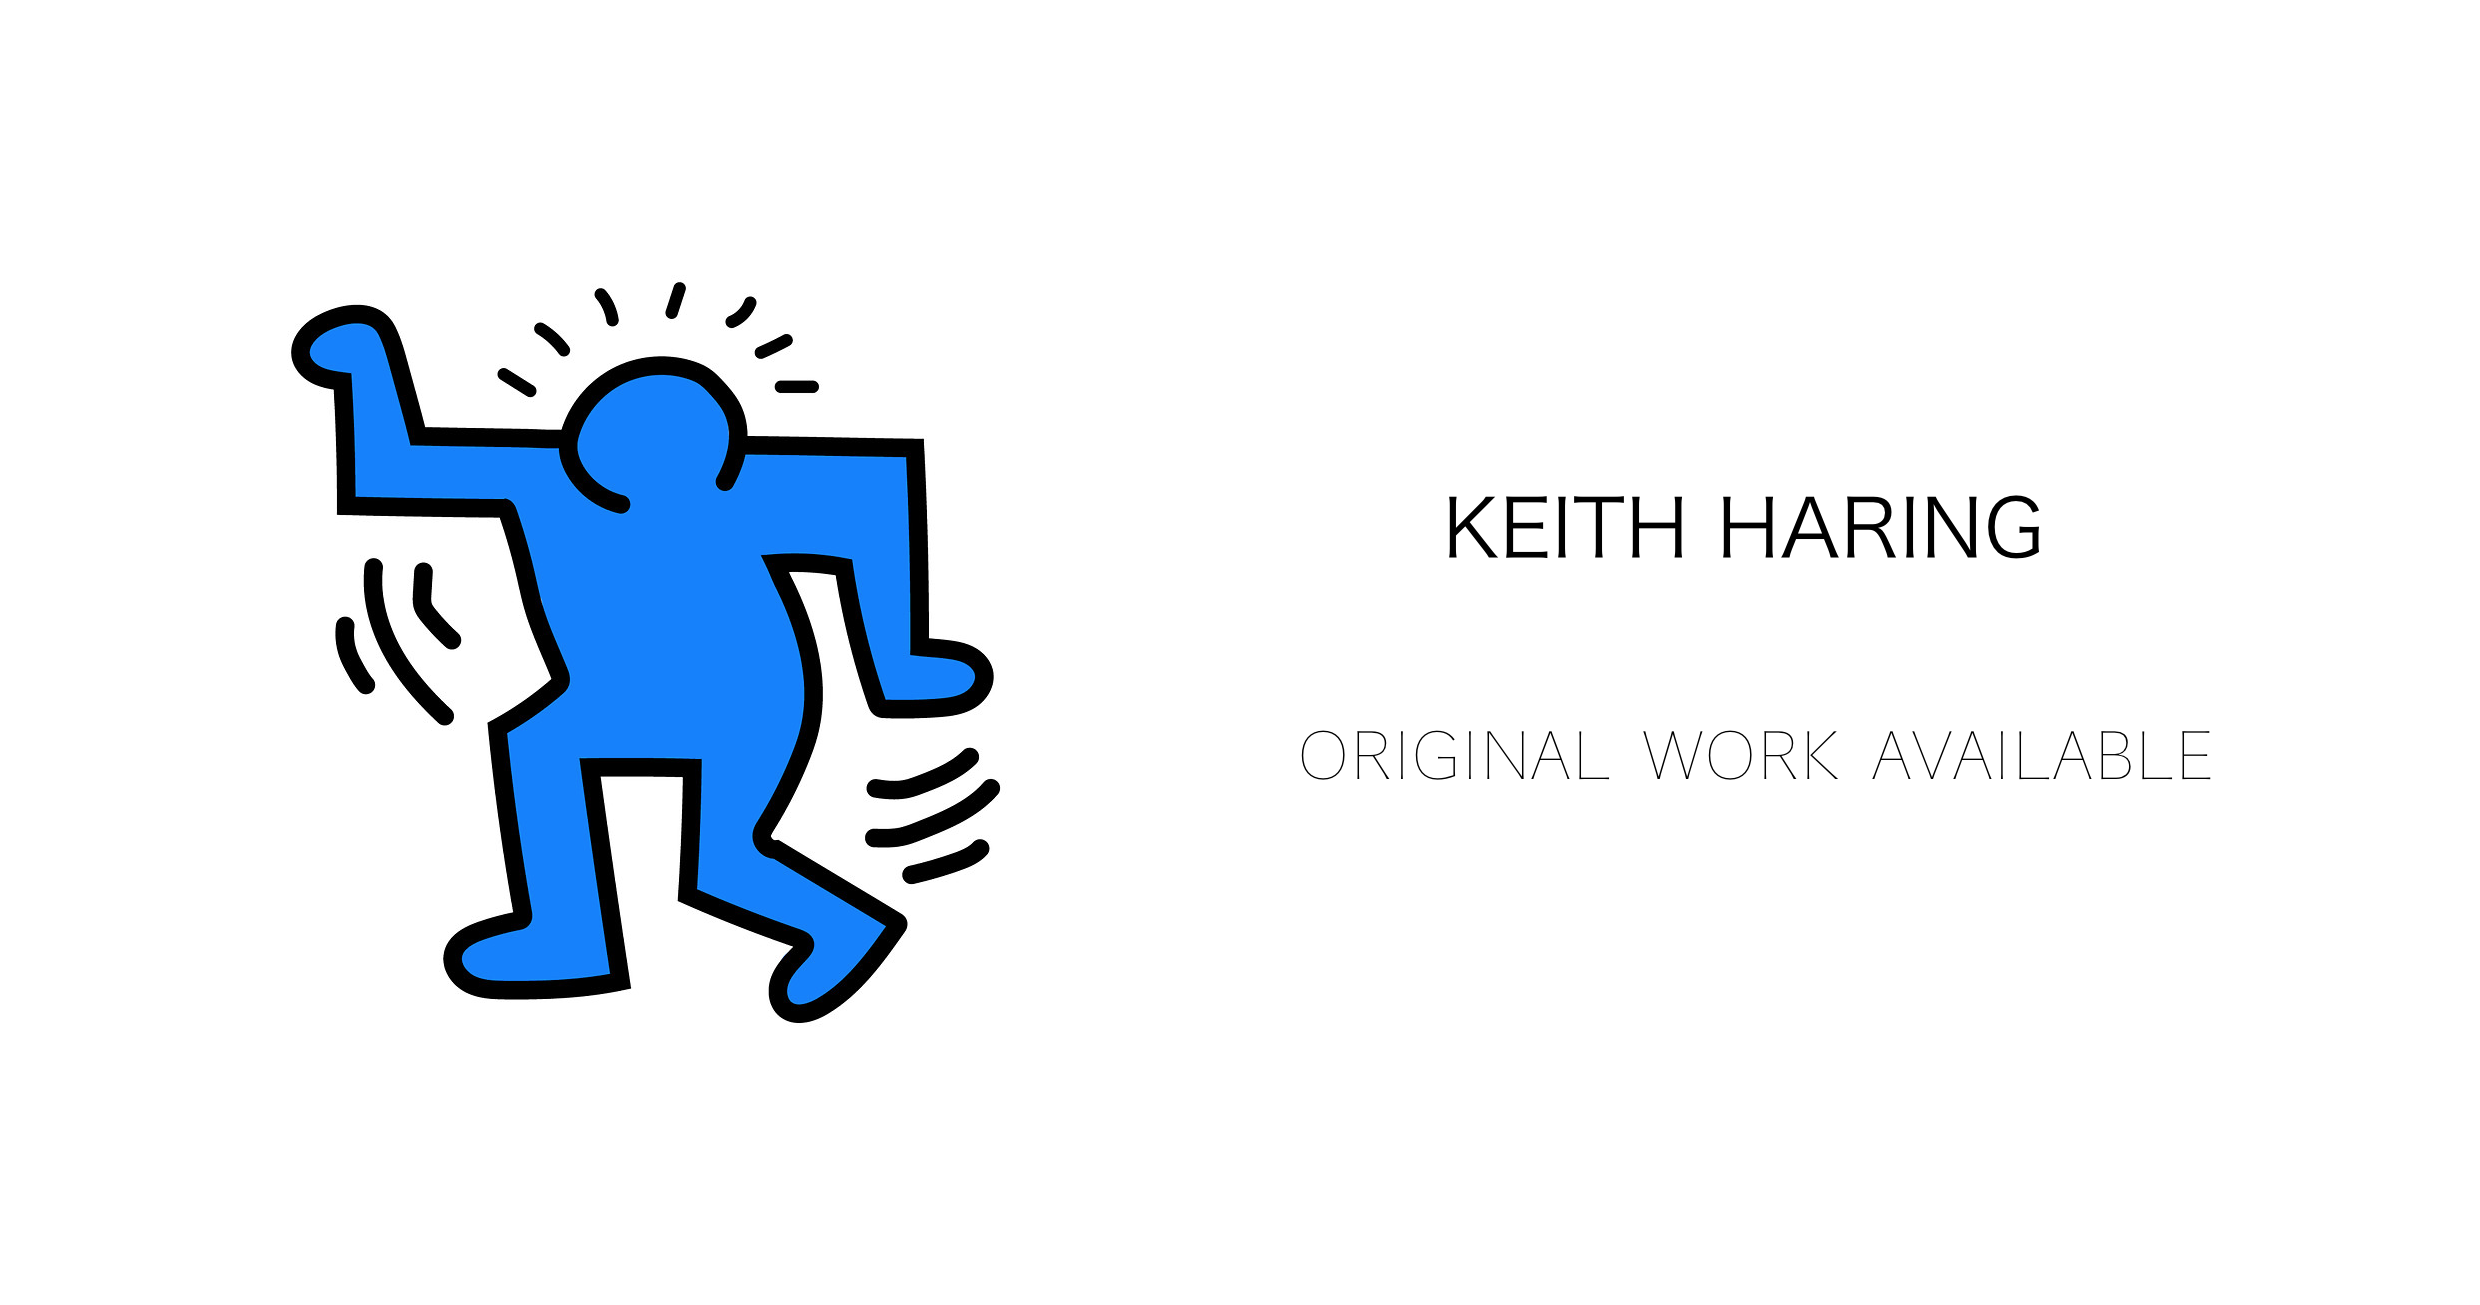 Keith haring homepage.png